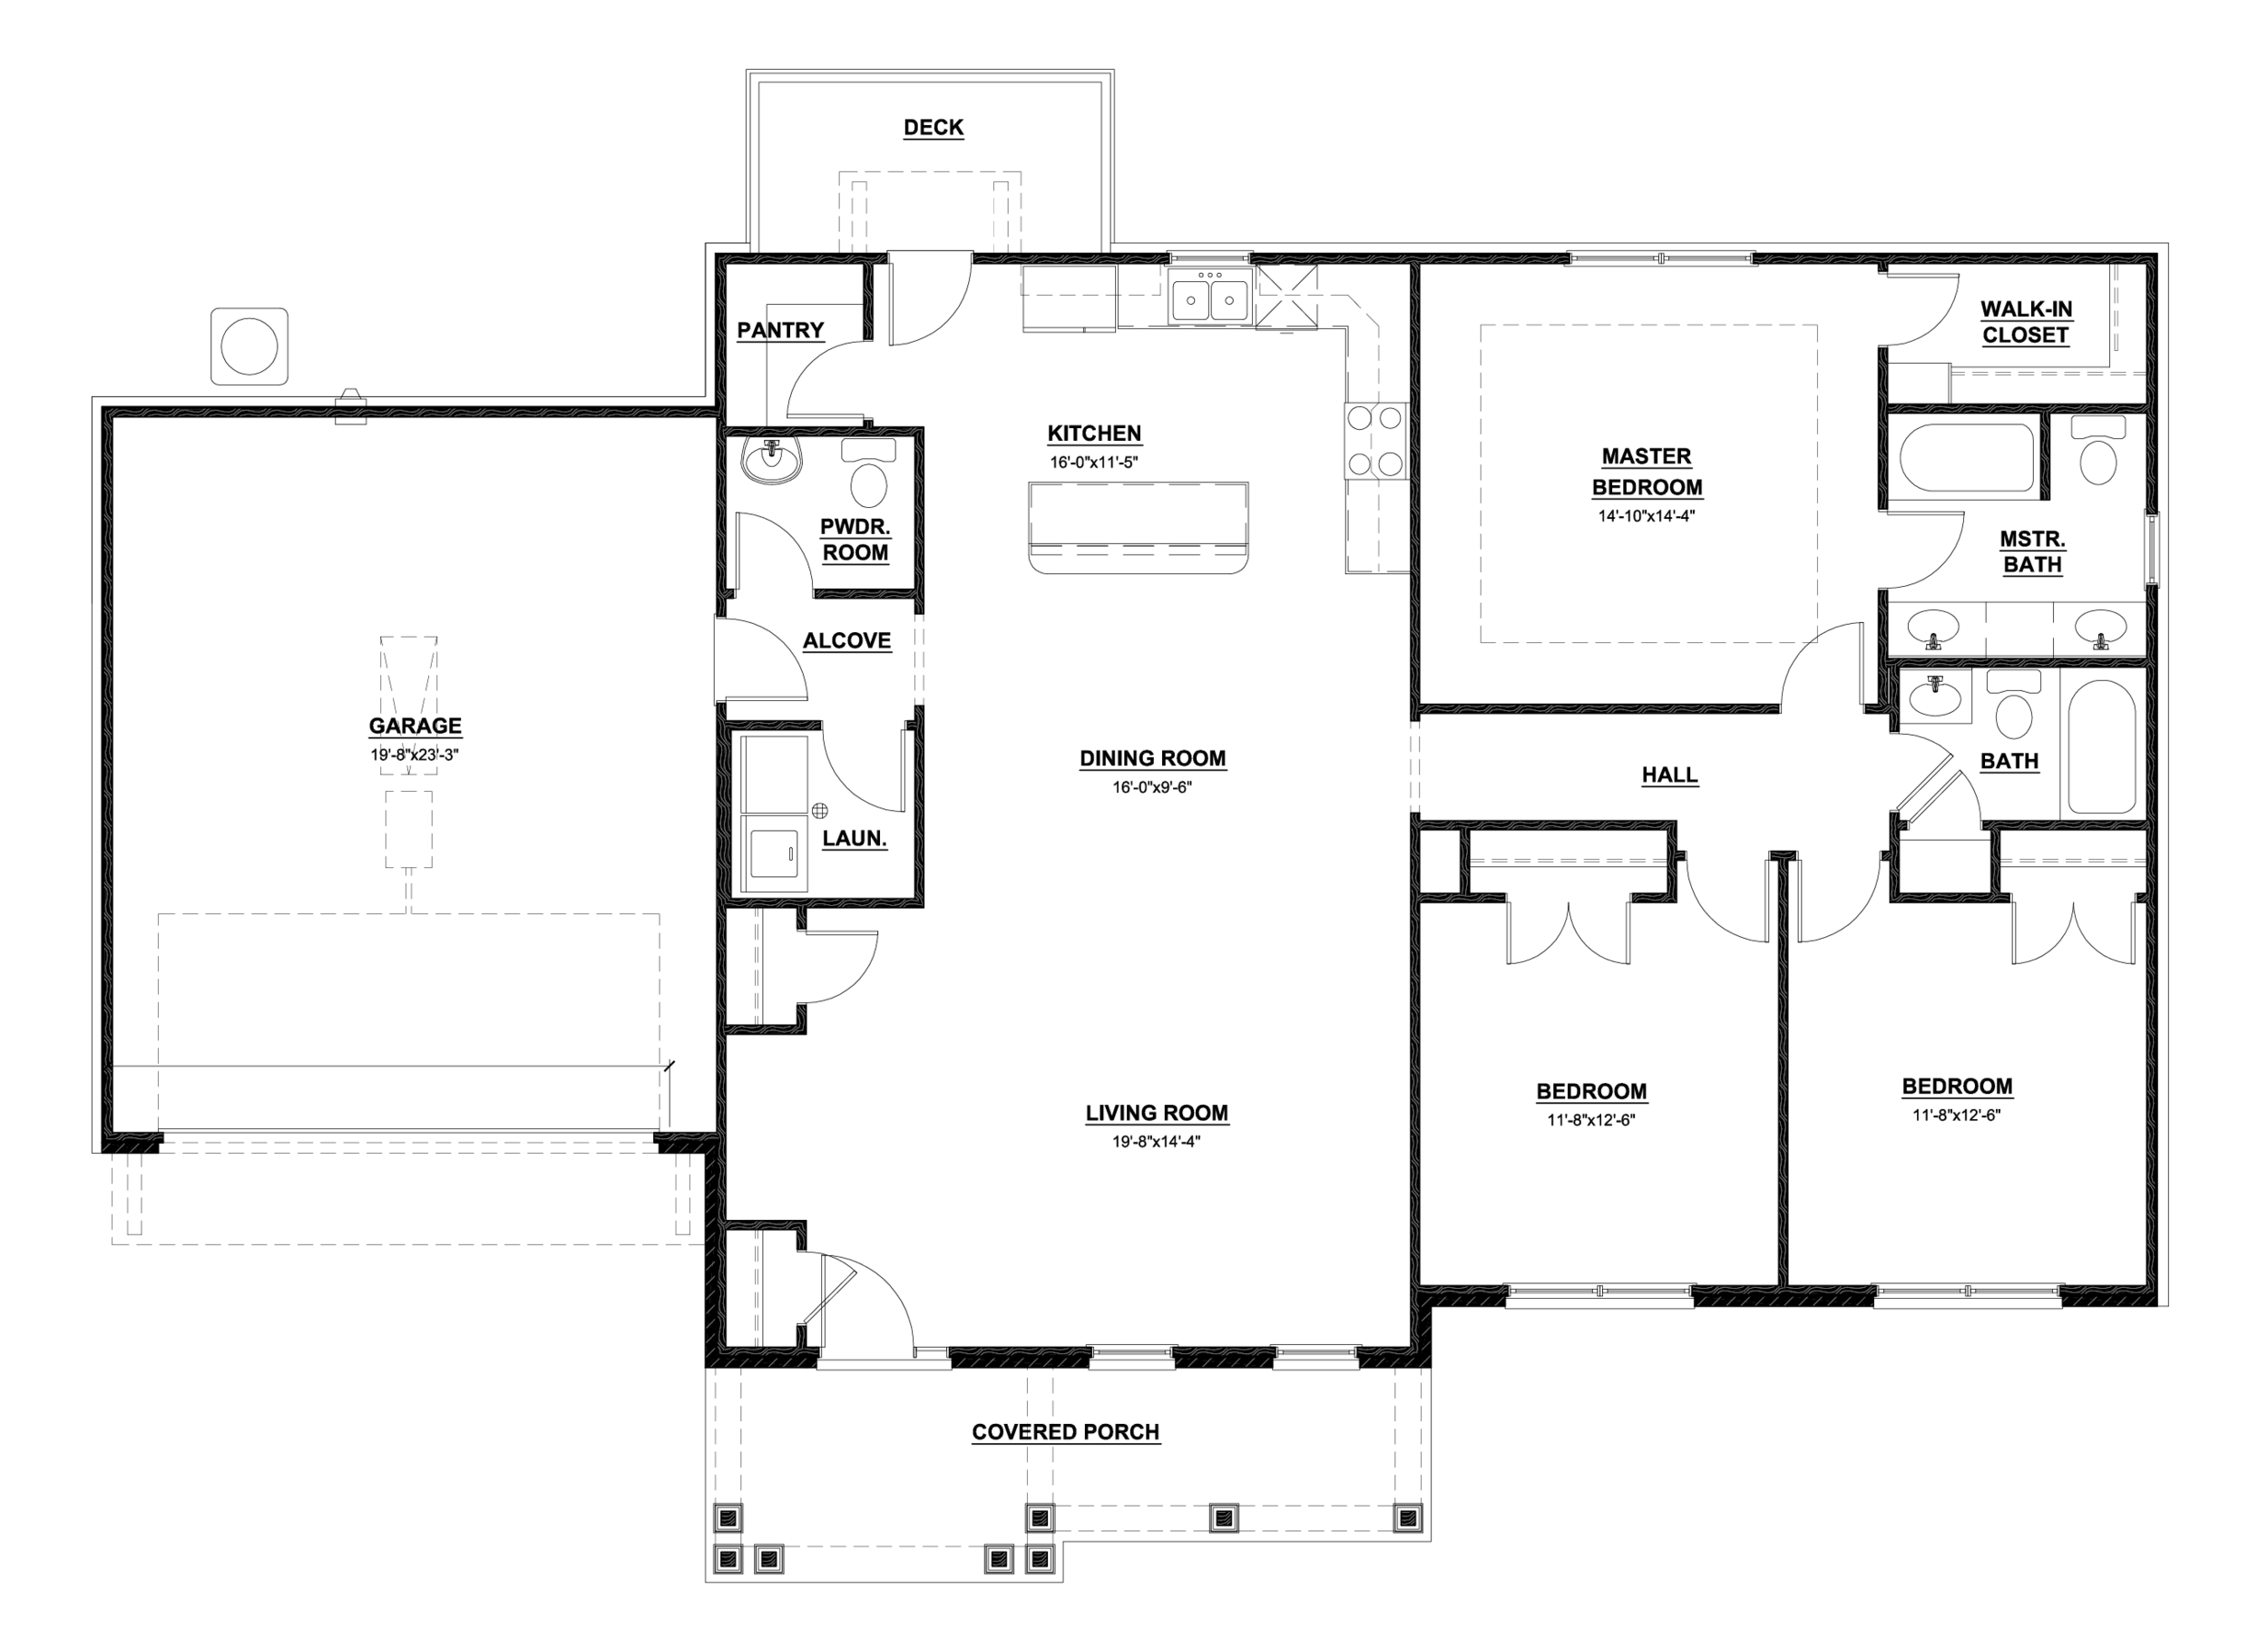 The Foley House Plan_Artboard 2.png